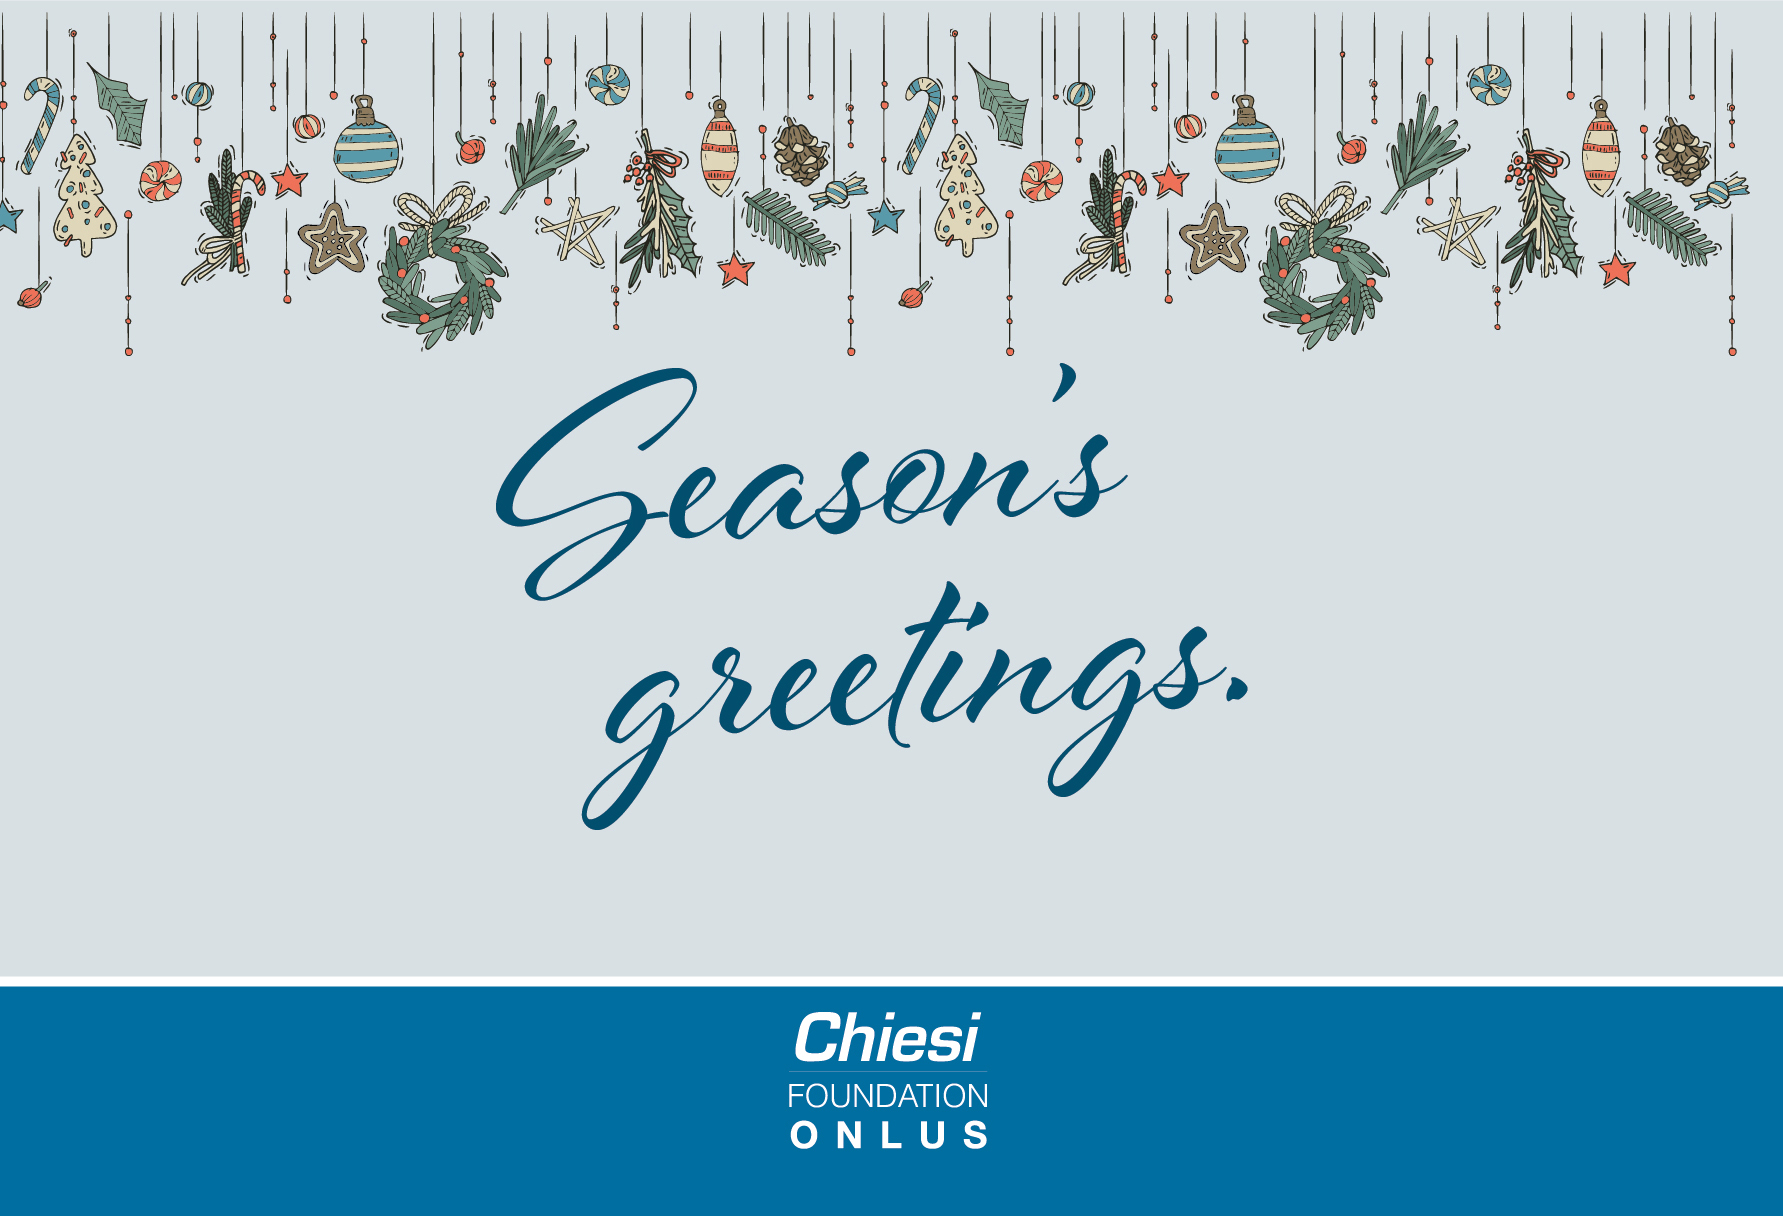 Happy Holidays from the Chiesi Foundation